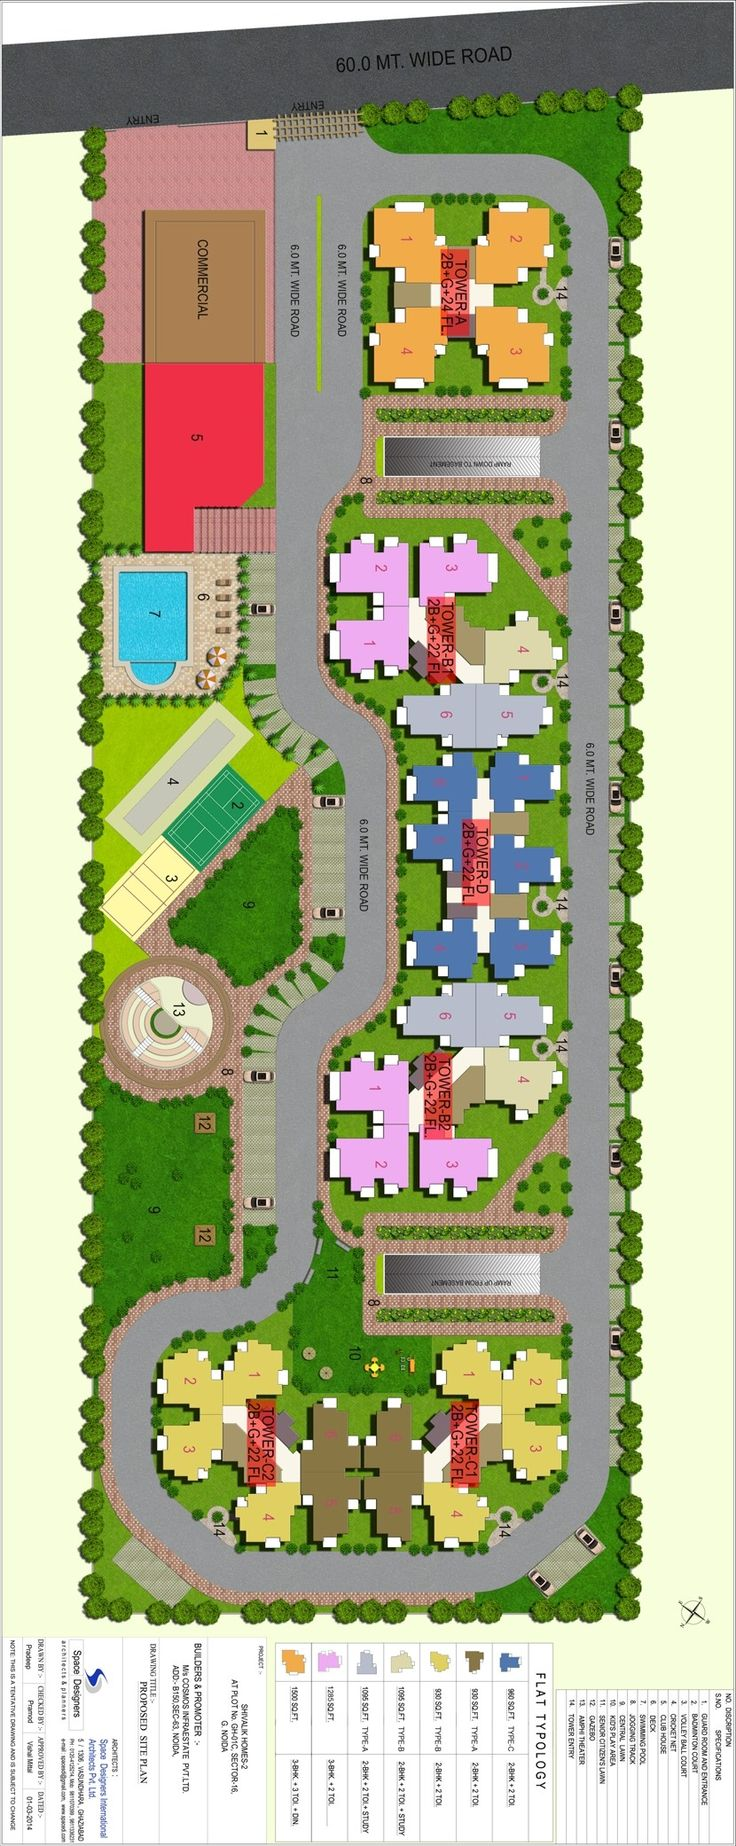 Shivalik Homes 2 Project in Noida Extension is Facing with 130 Mtr wide road And will have dedicated car parking in the basement for every apartment .This project will have large club House as well as a Communicty facility centre inside.